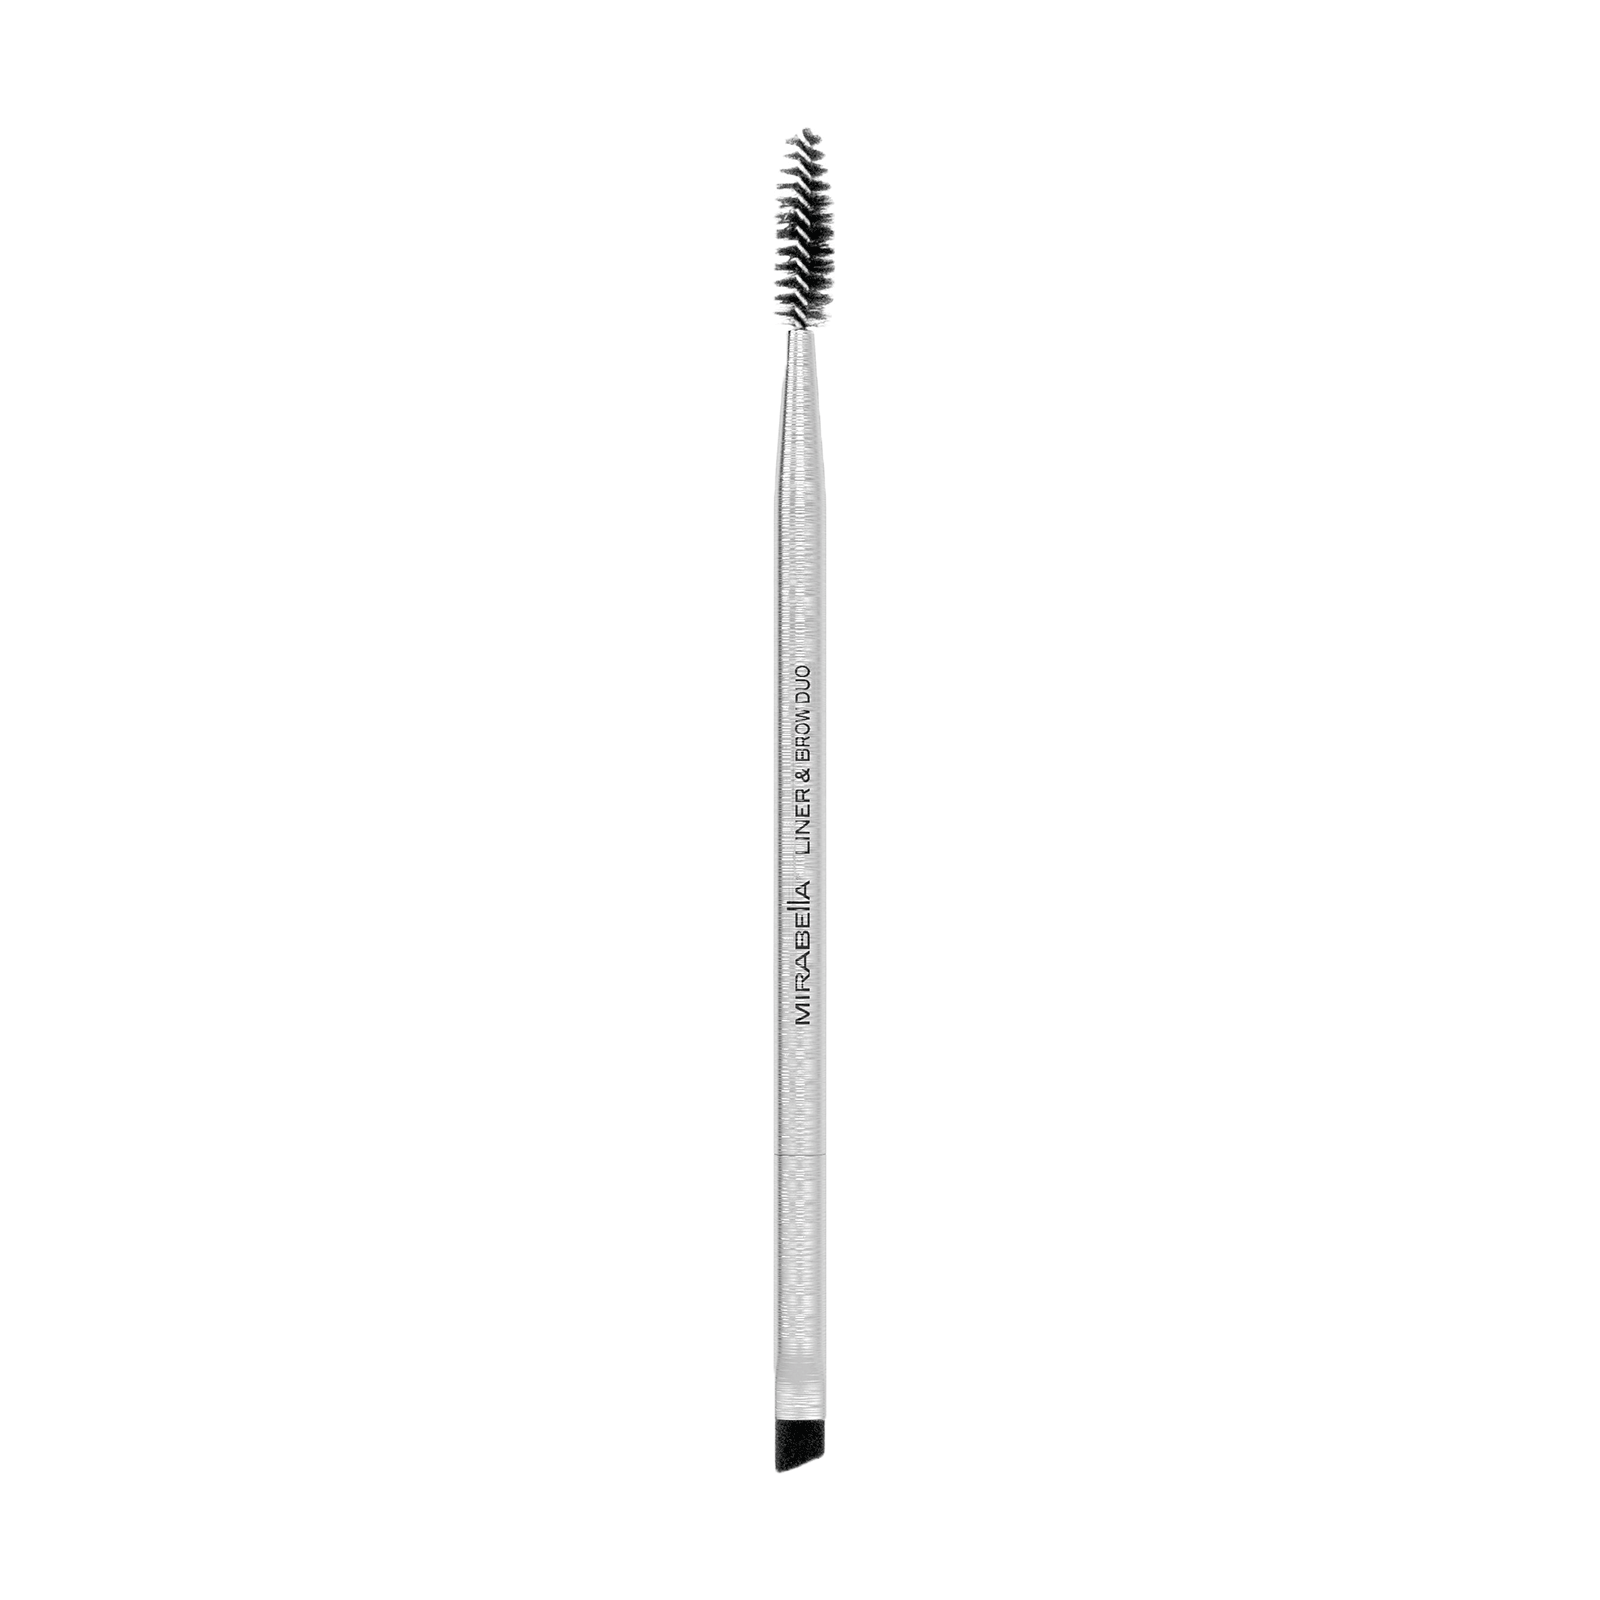 Liner and Brow Duo Brush